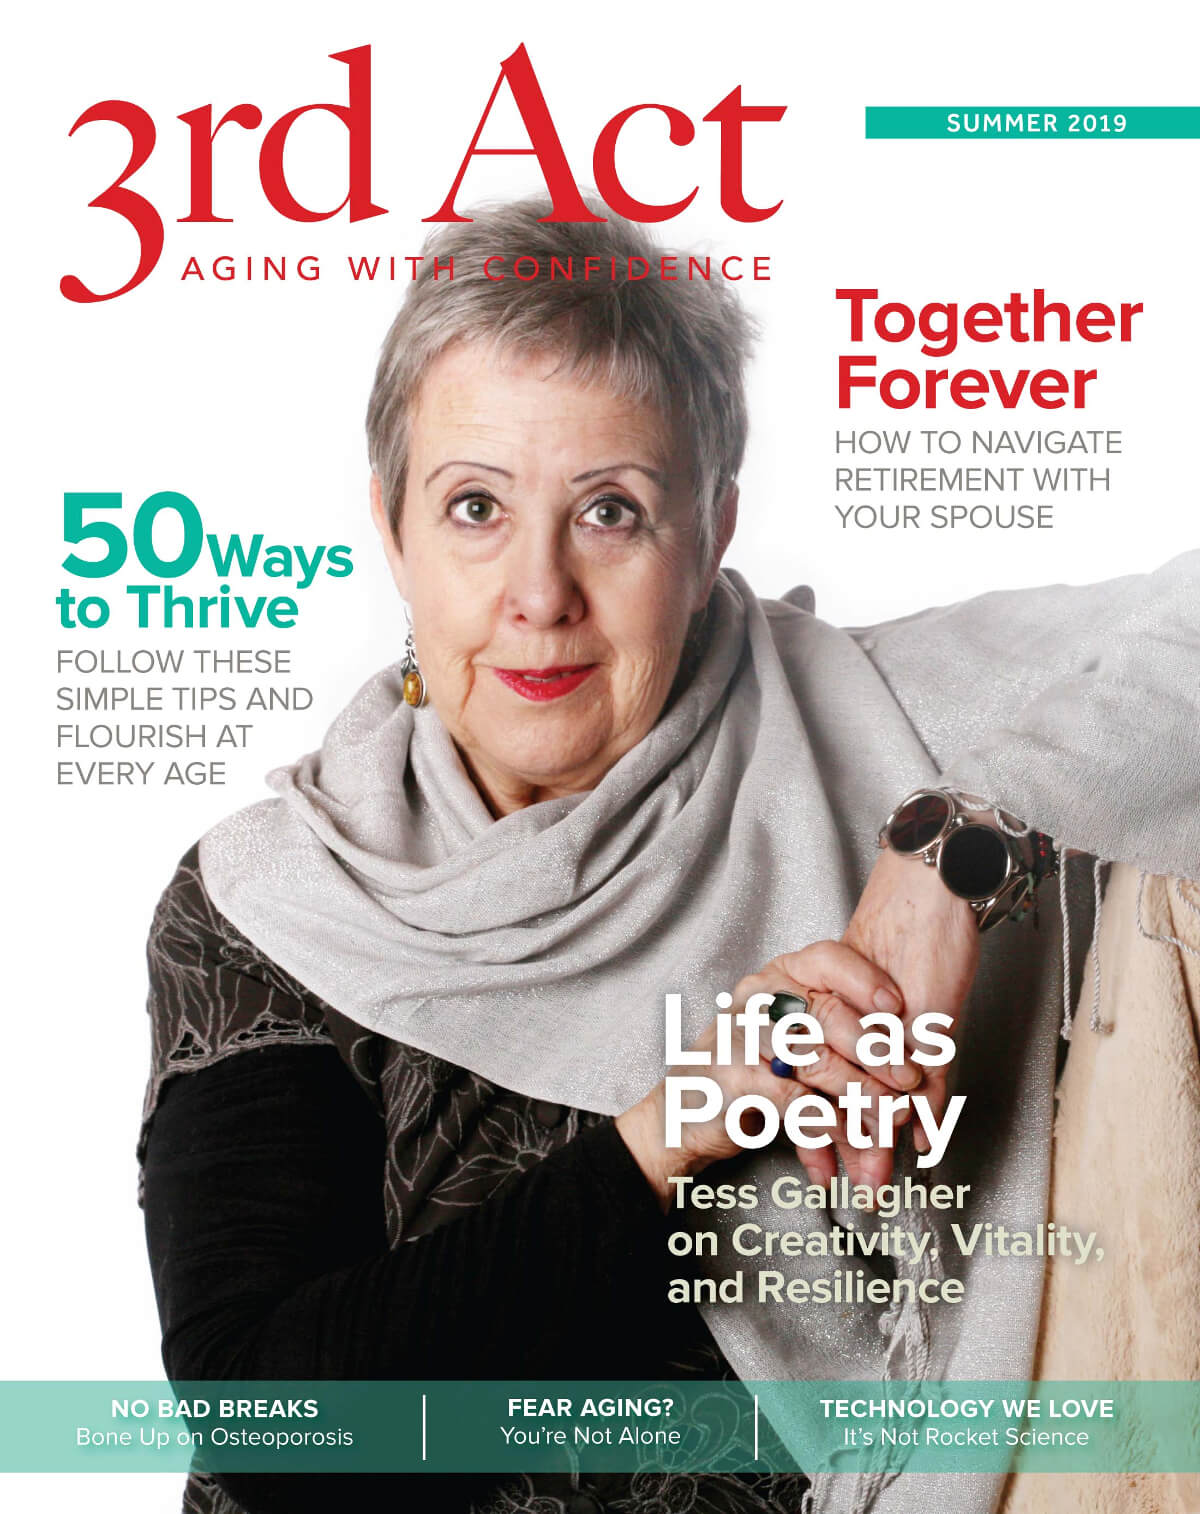 3rd Act Magazine Aging With Confidence